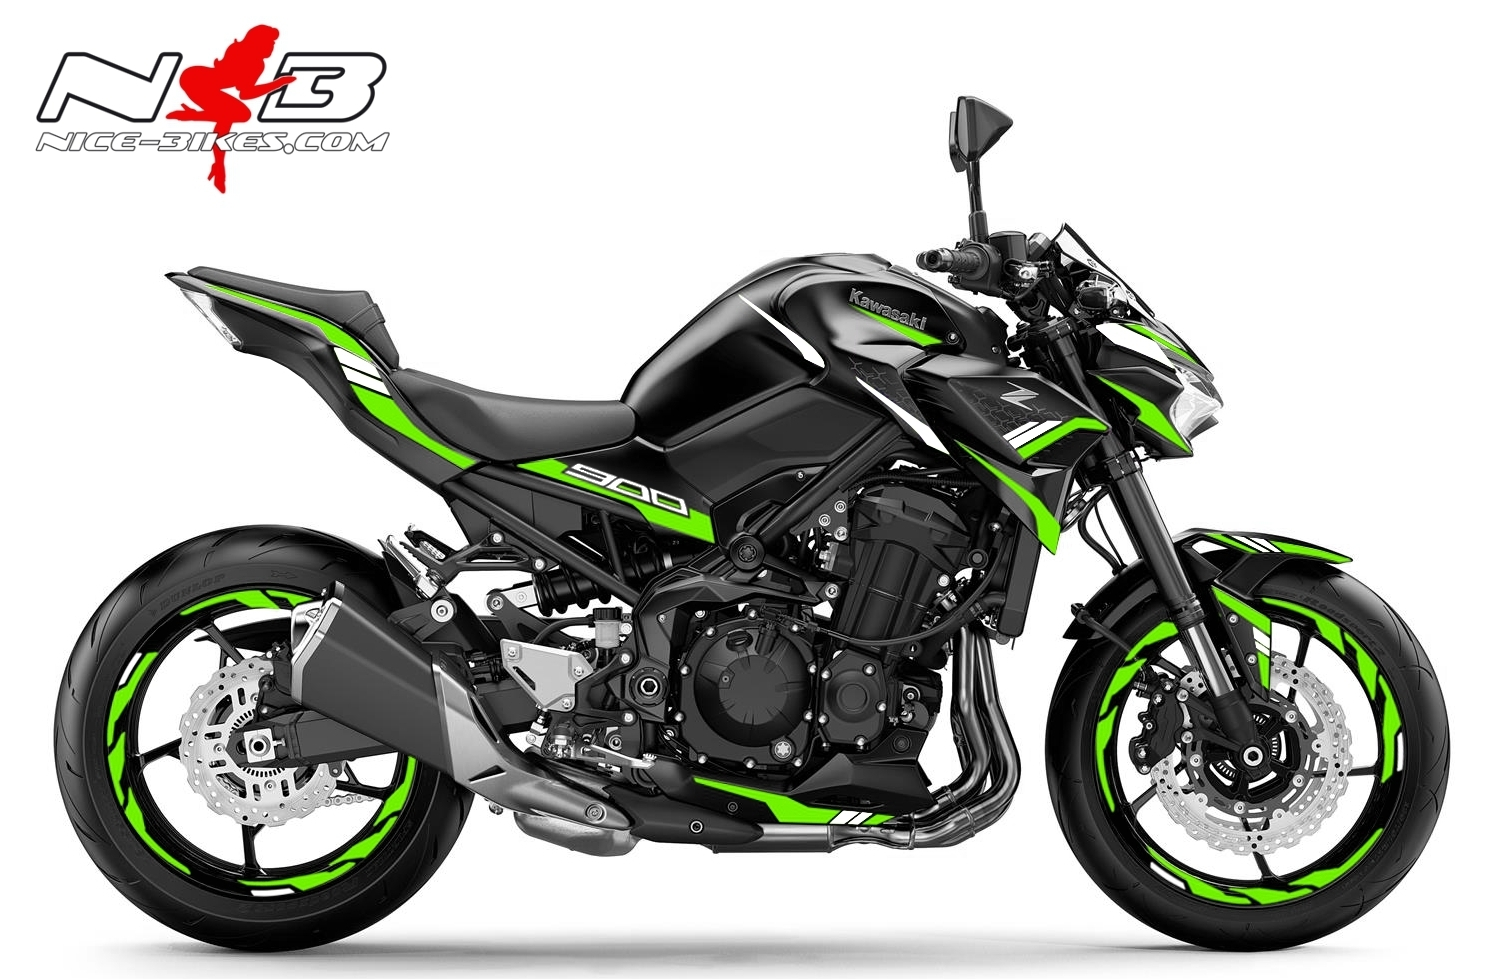 Foliendesign Kawasaki Z900 Bj. 2020 Lime Green